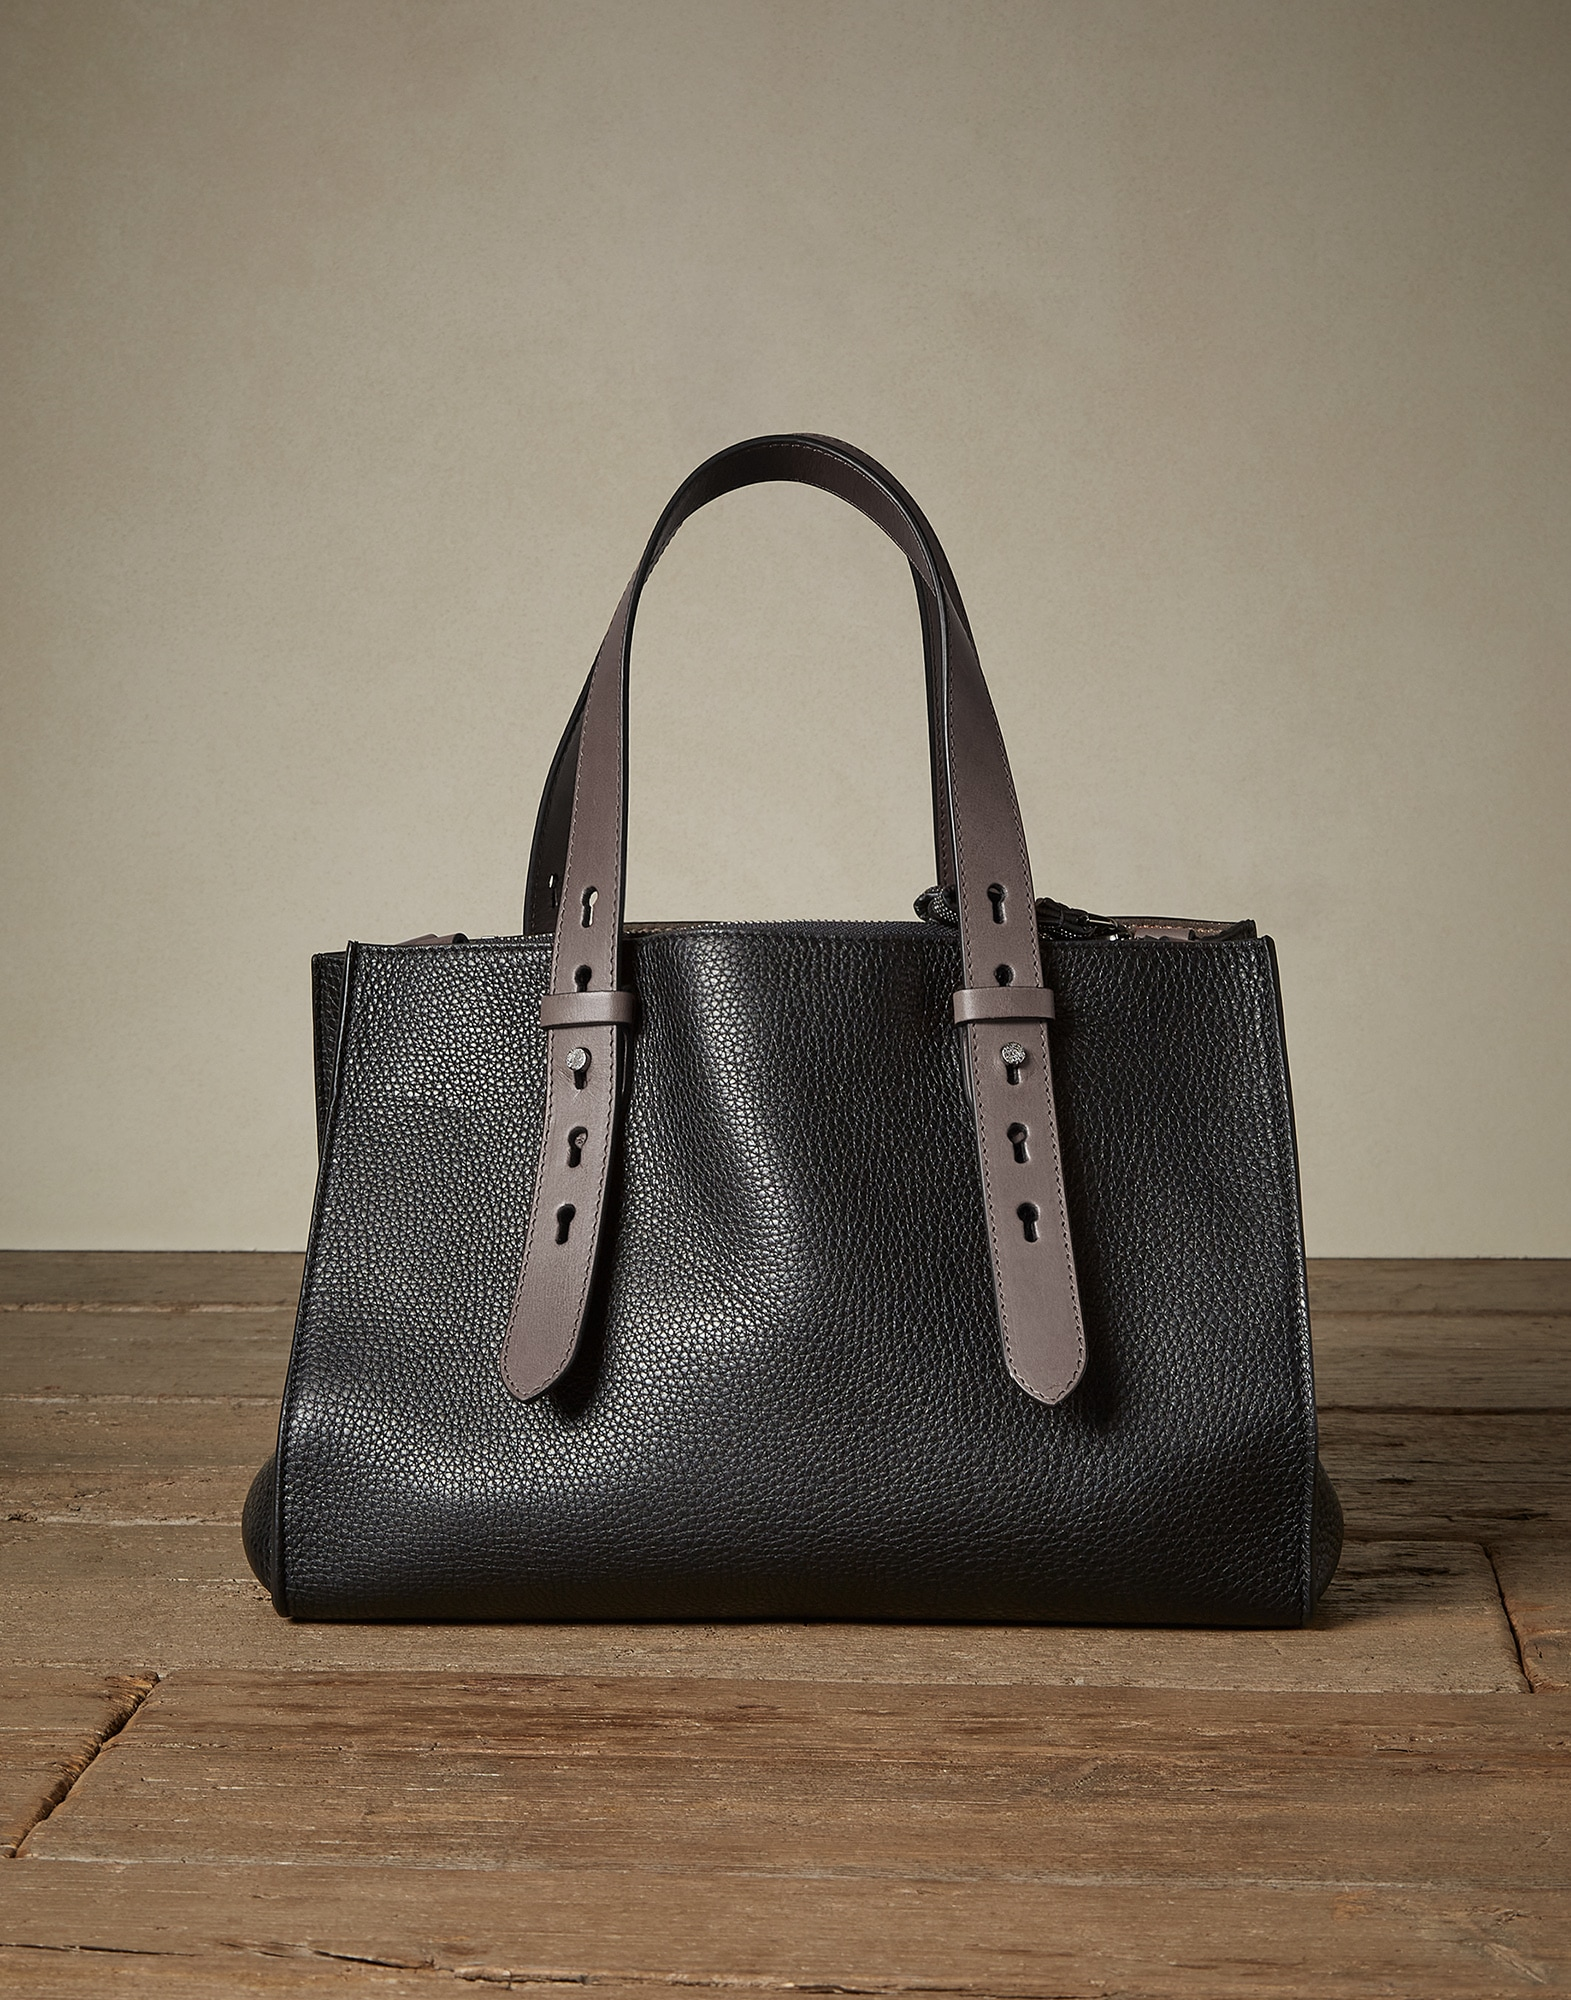 Shopper Bag Black Woman 1 - Brunello Cucinelli